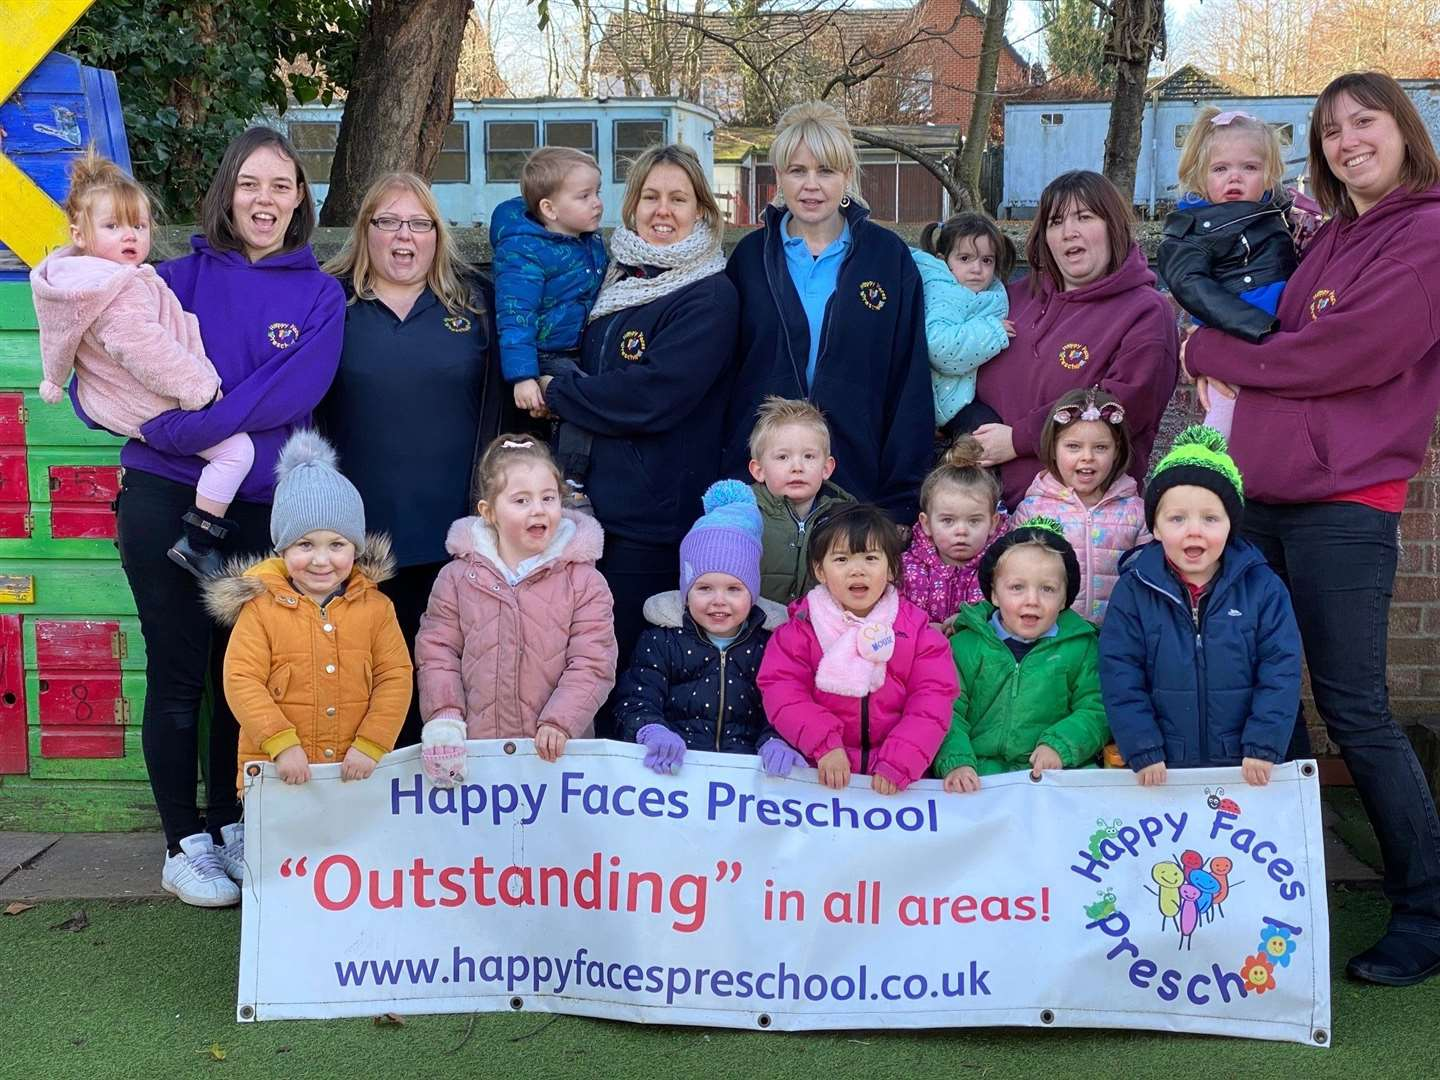 The staff and some of the children at Happy Faces Pre-School celebrate its continued high rating by Ofsted inspectors. Contributed picture